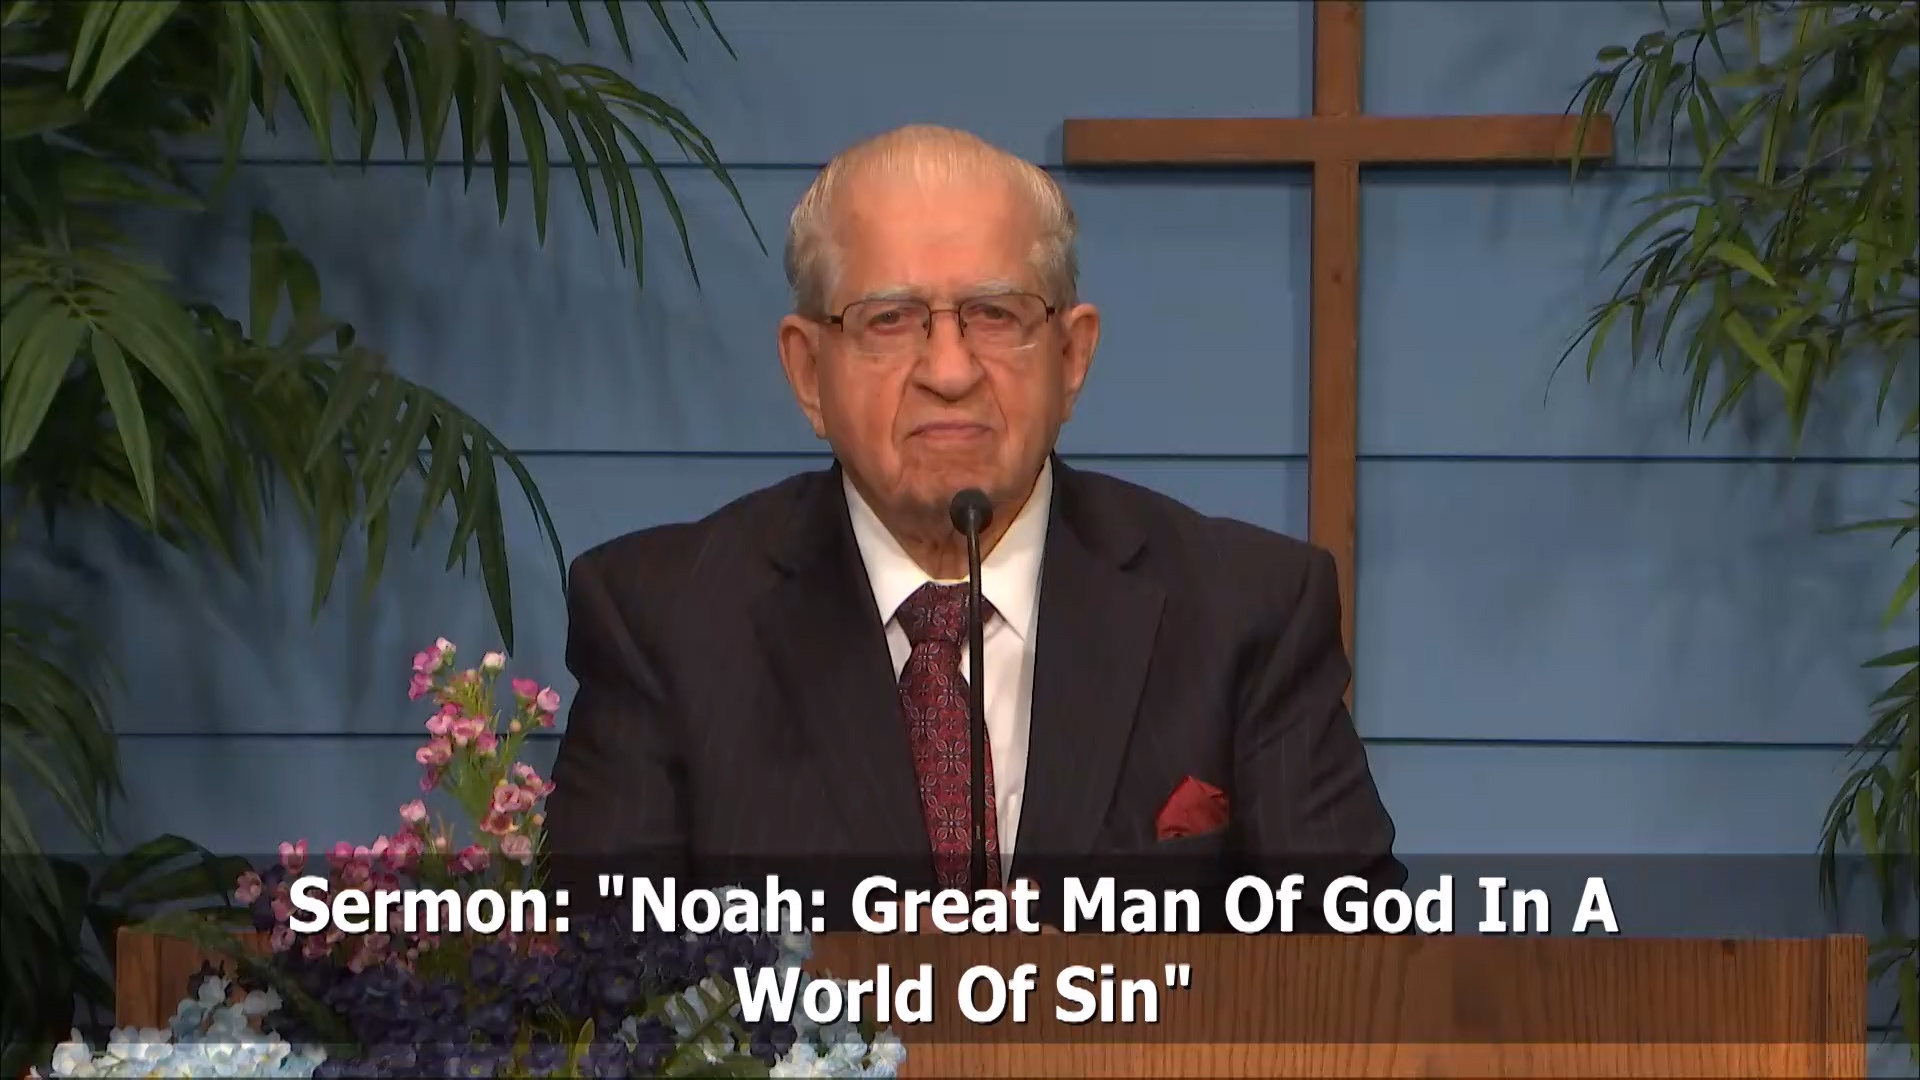 Noah: Great Man Of God In A World Of Sin